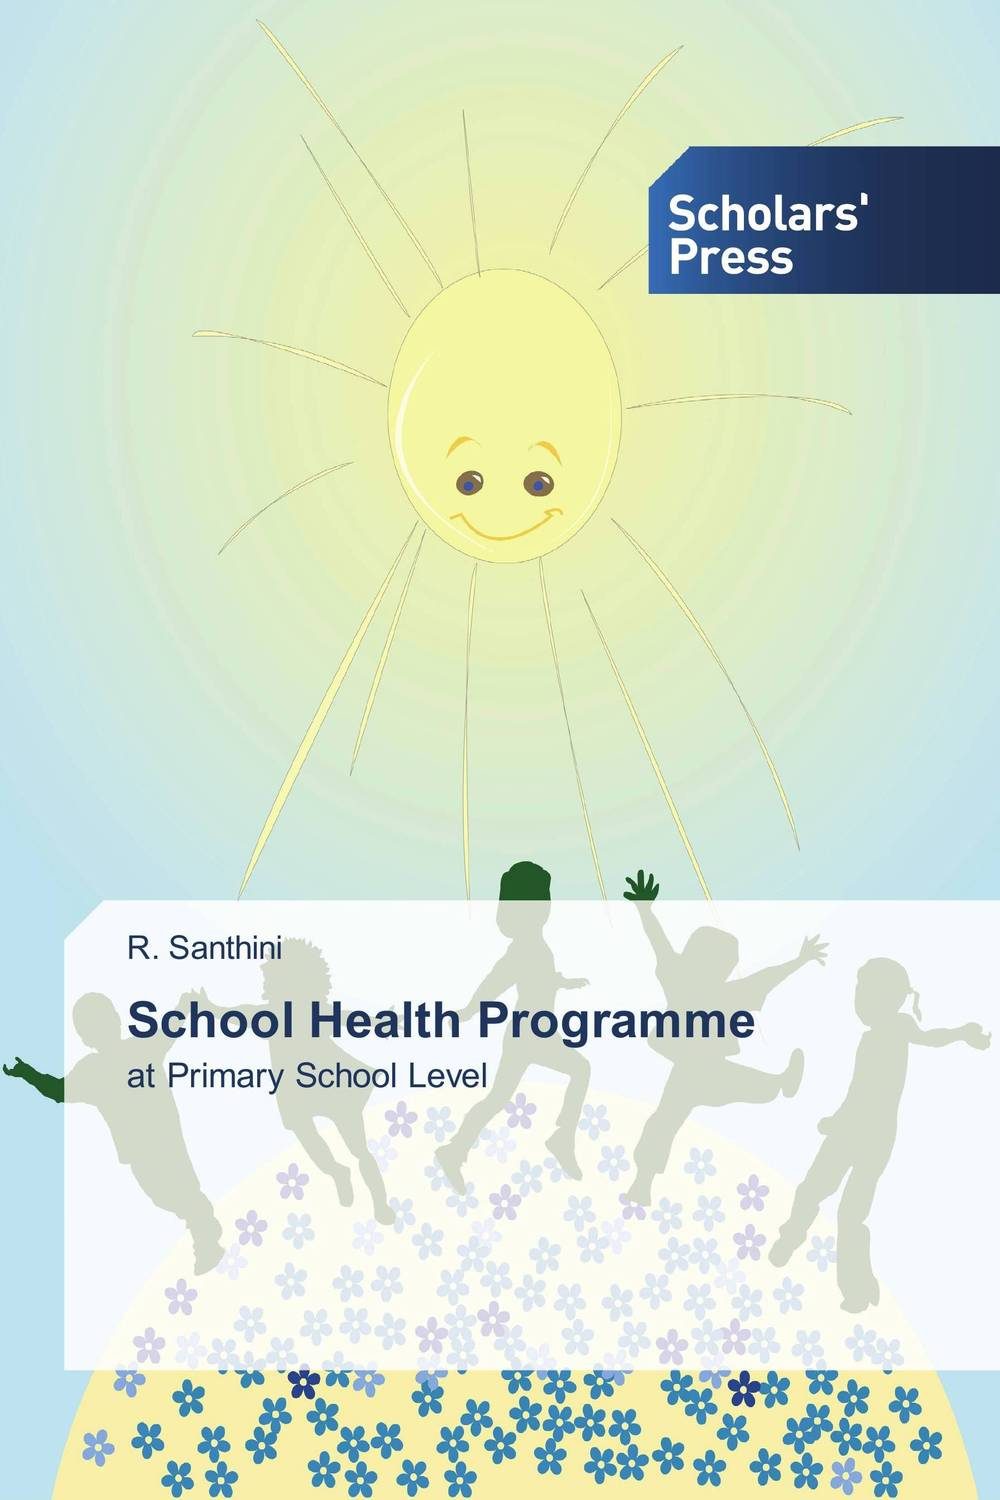 School Health Programme nutrition and learning outcomes of bangladeshi primary school children